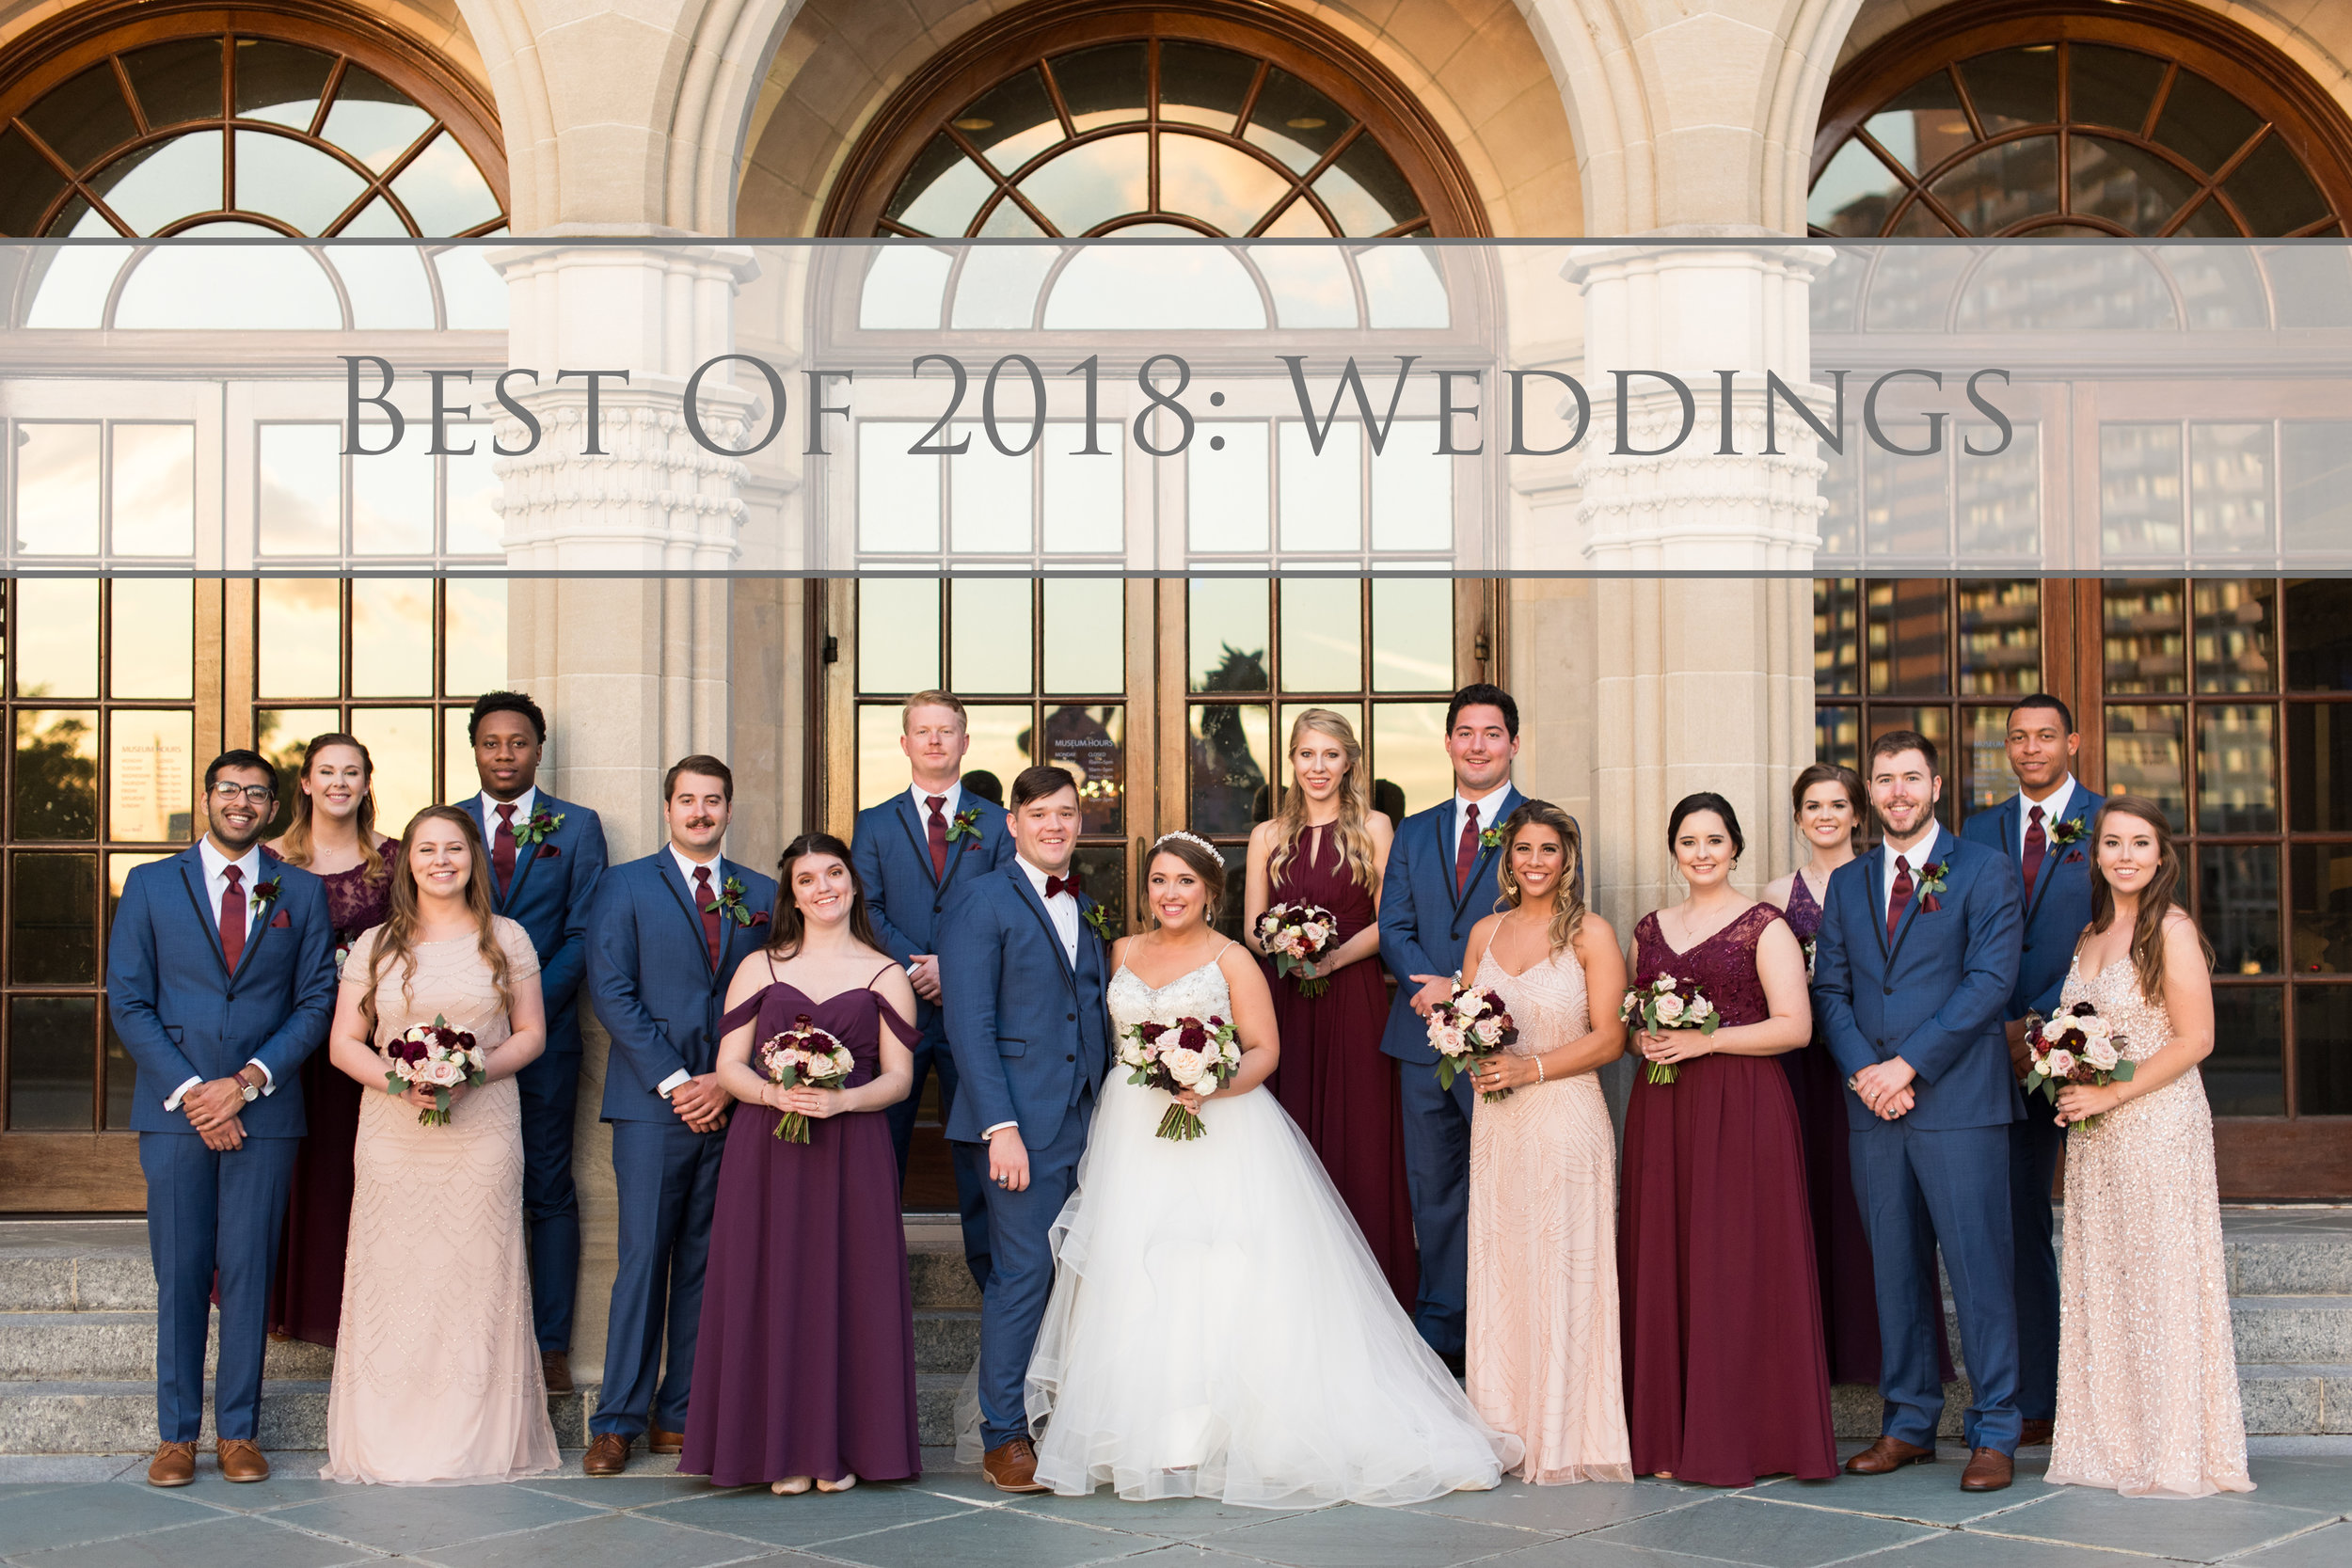 Best of 2018 Weddings.jpg